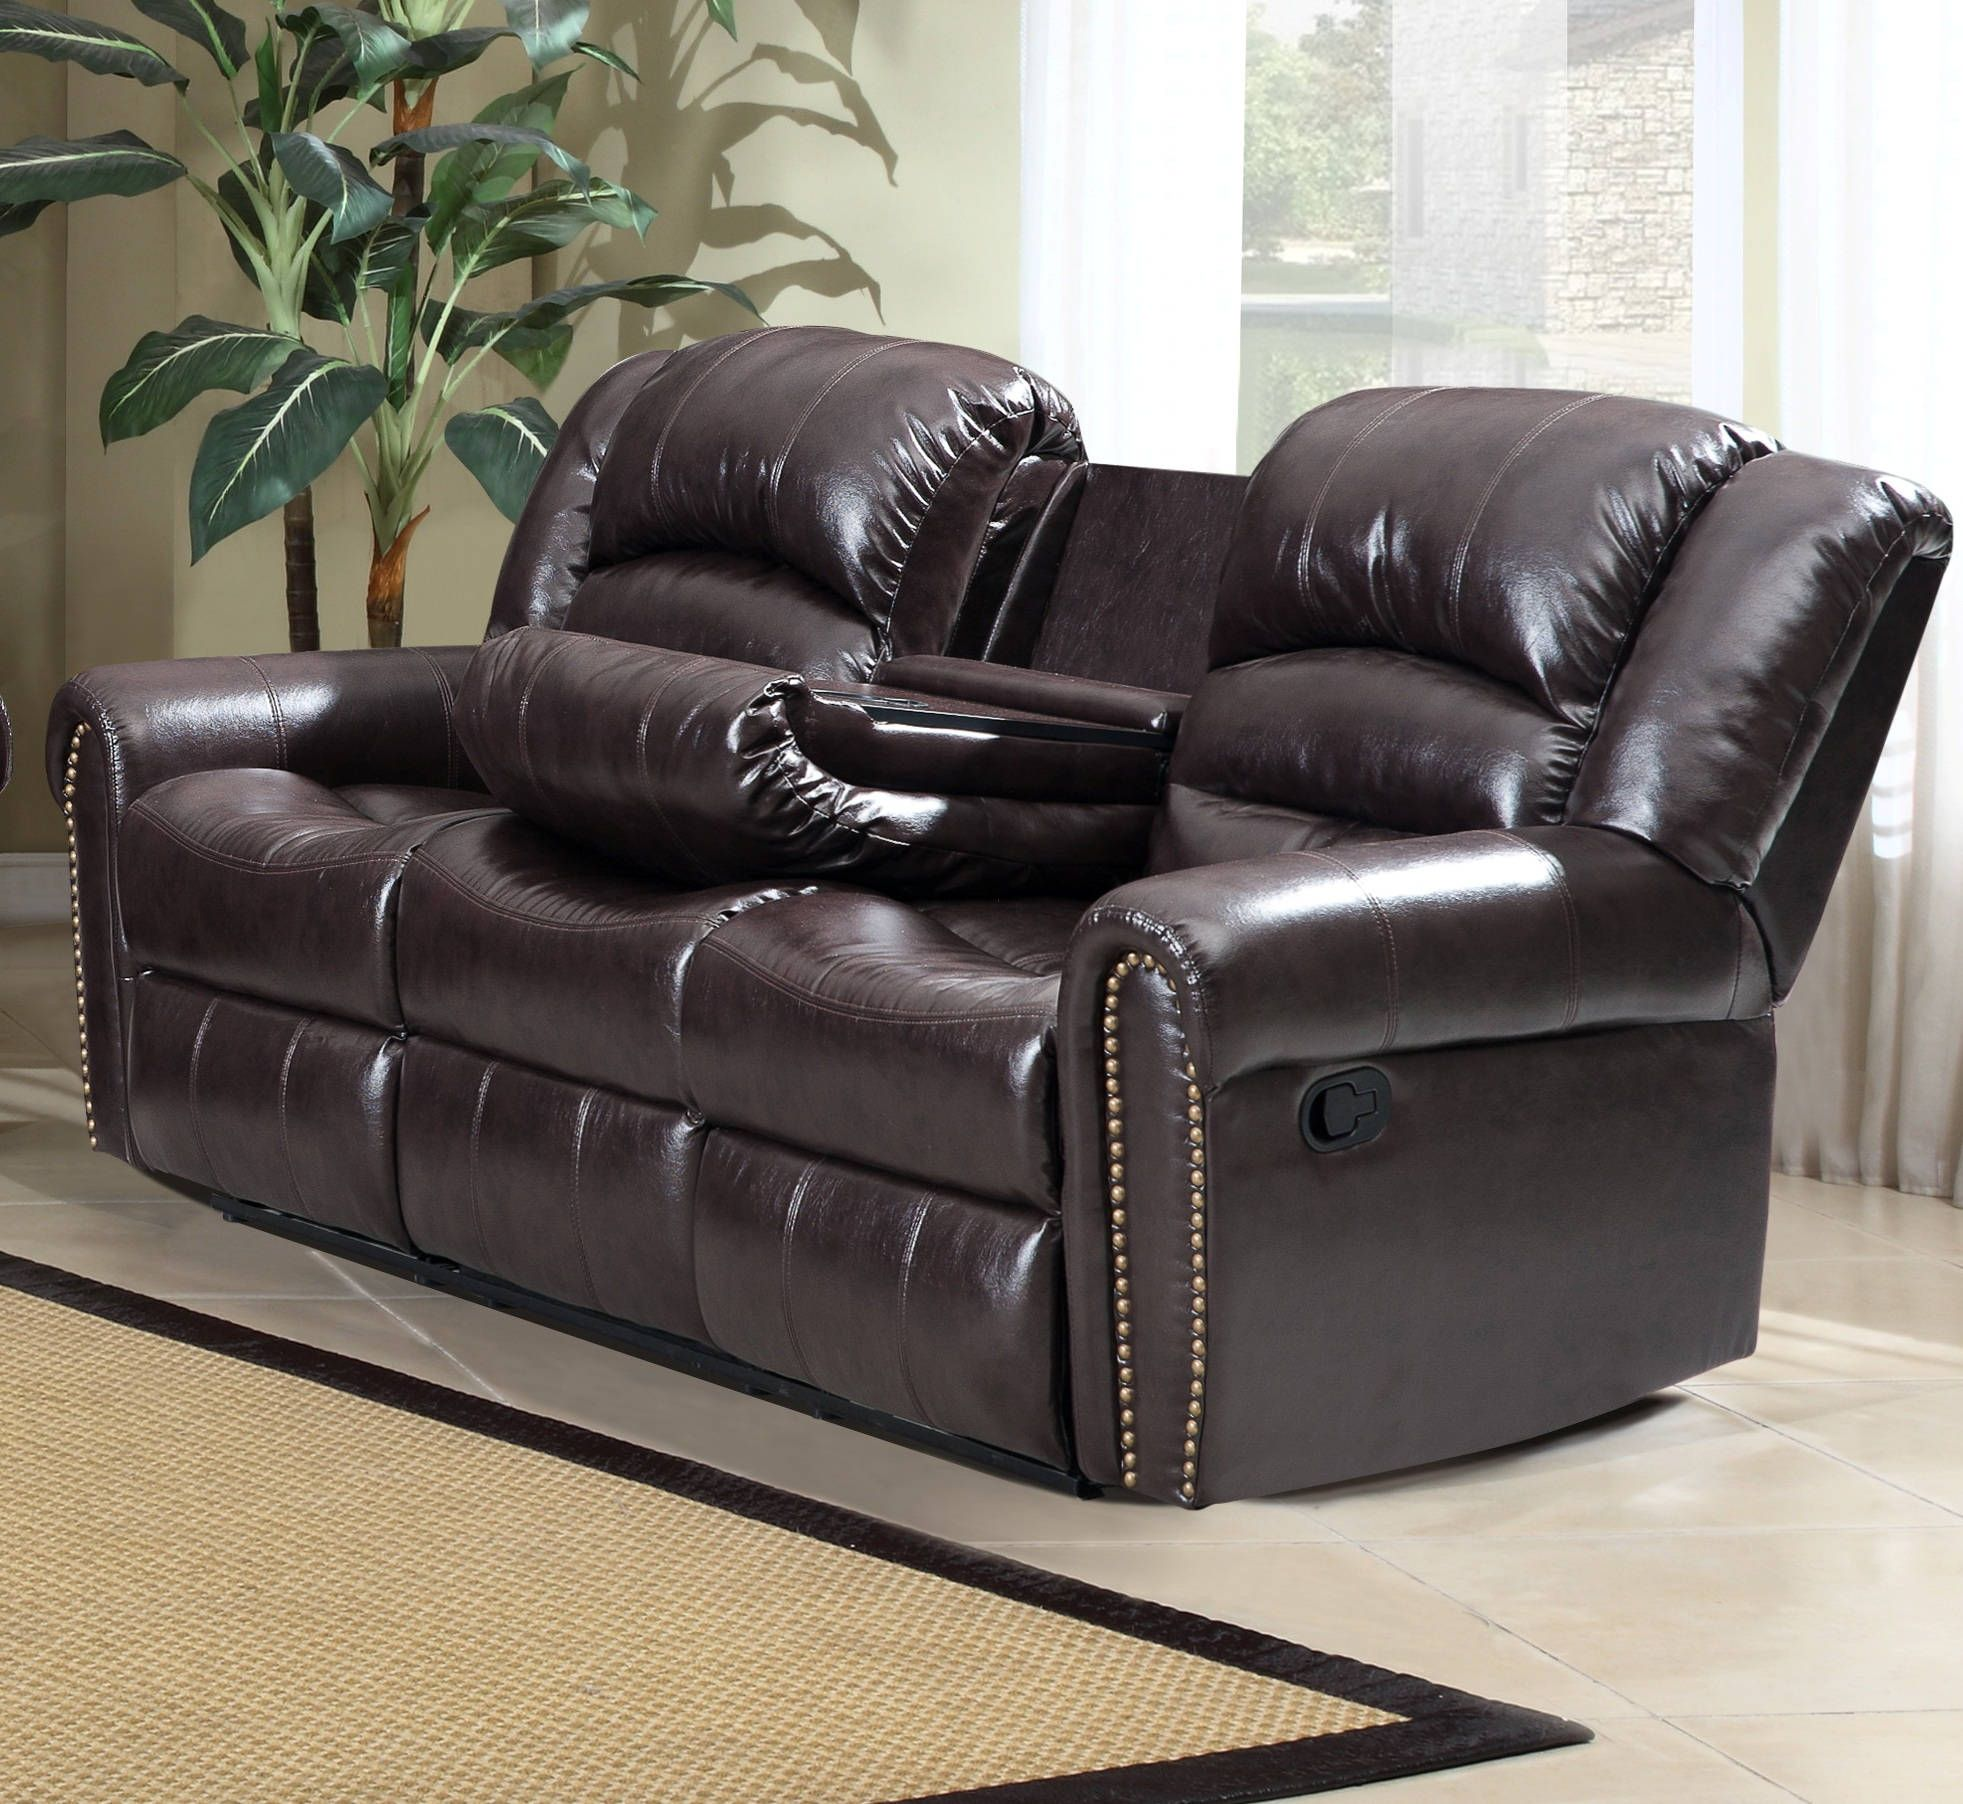 Superior Chelsea Brown Bonded Leather Removable Back Nailhead Design Sofa